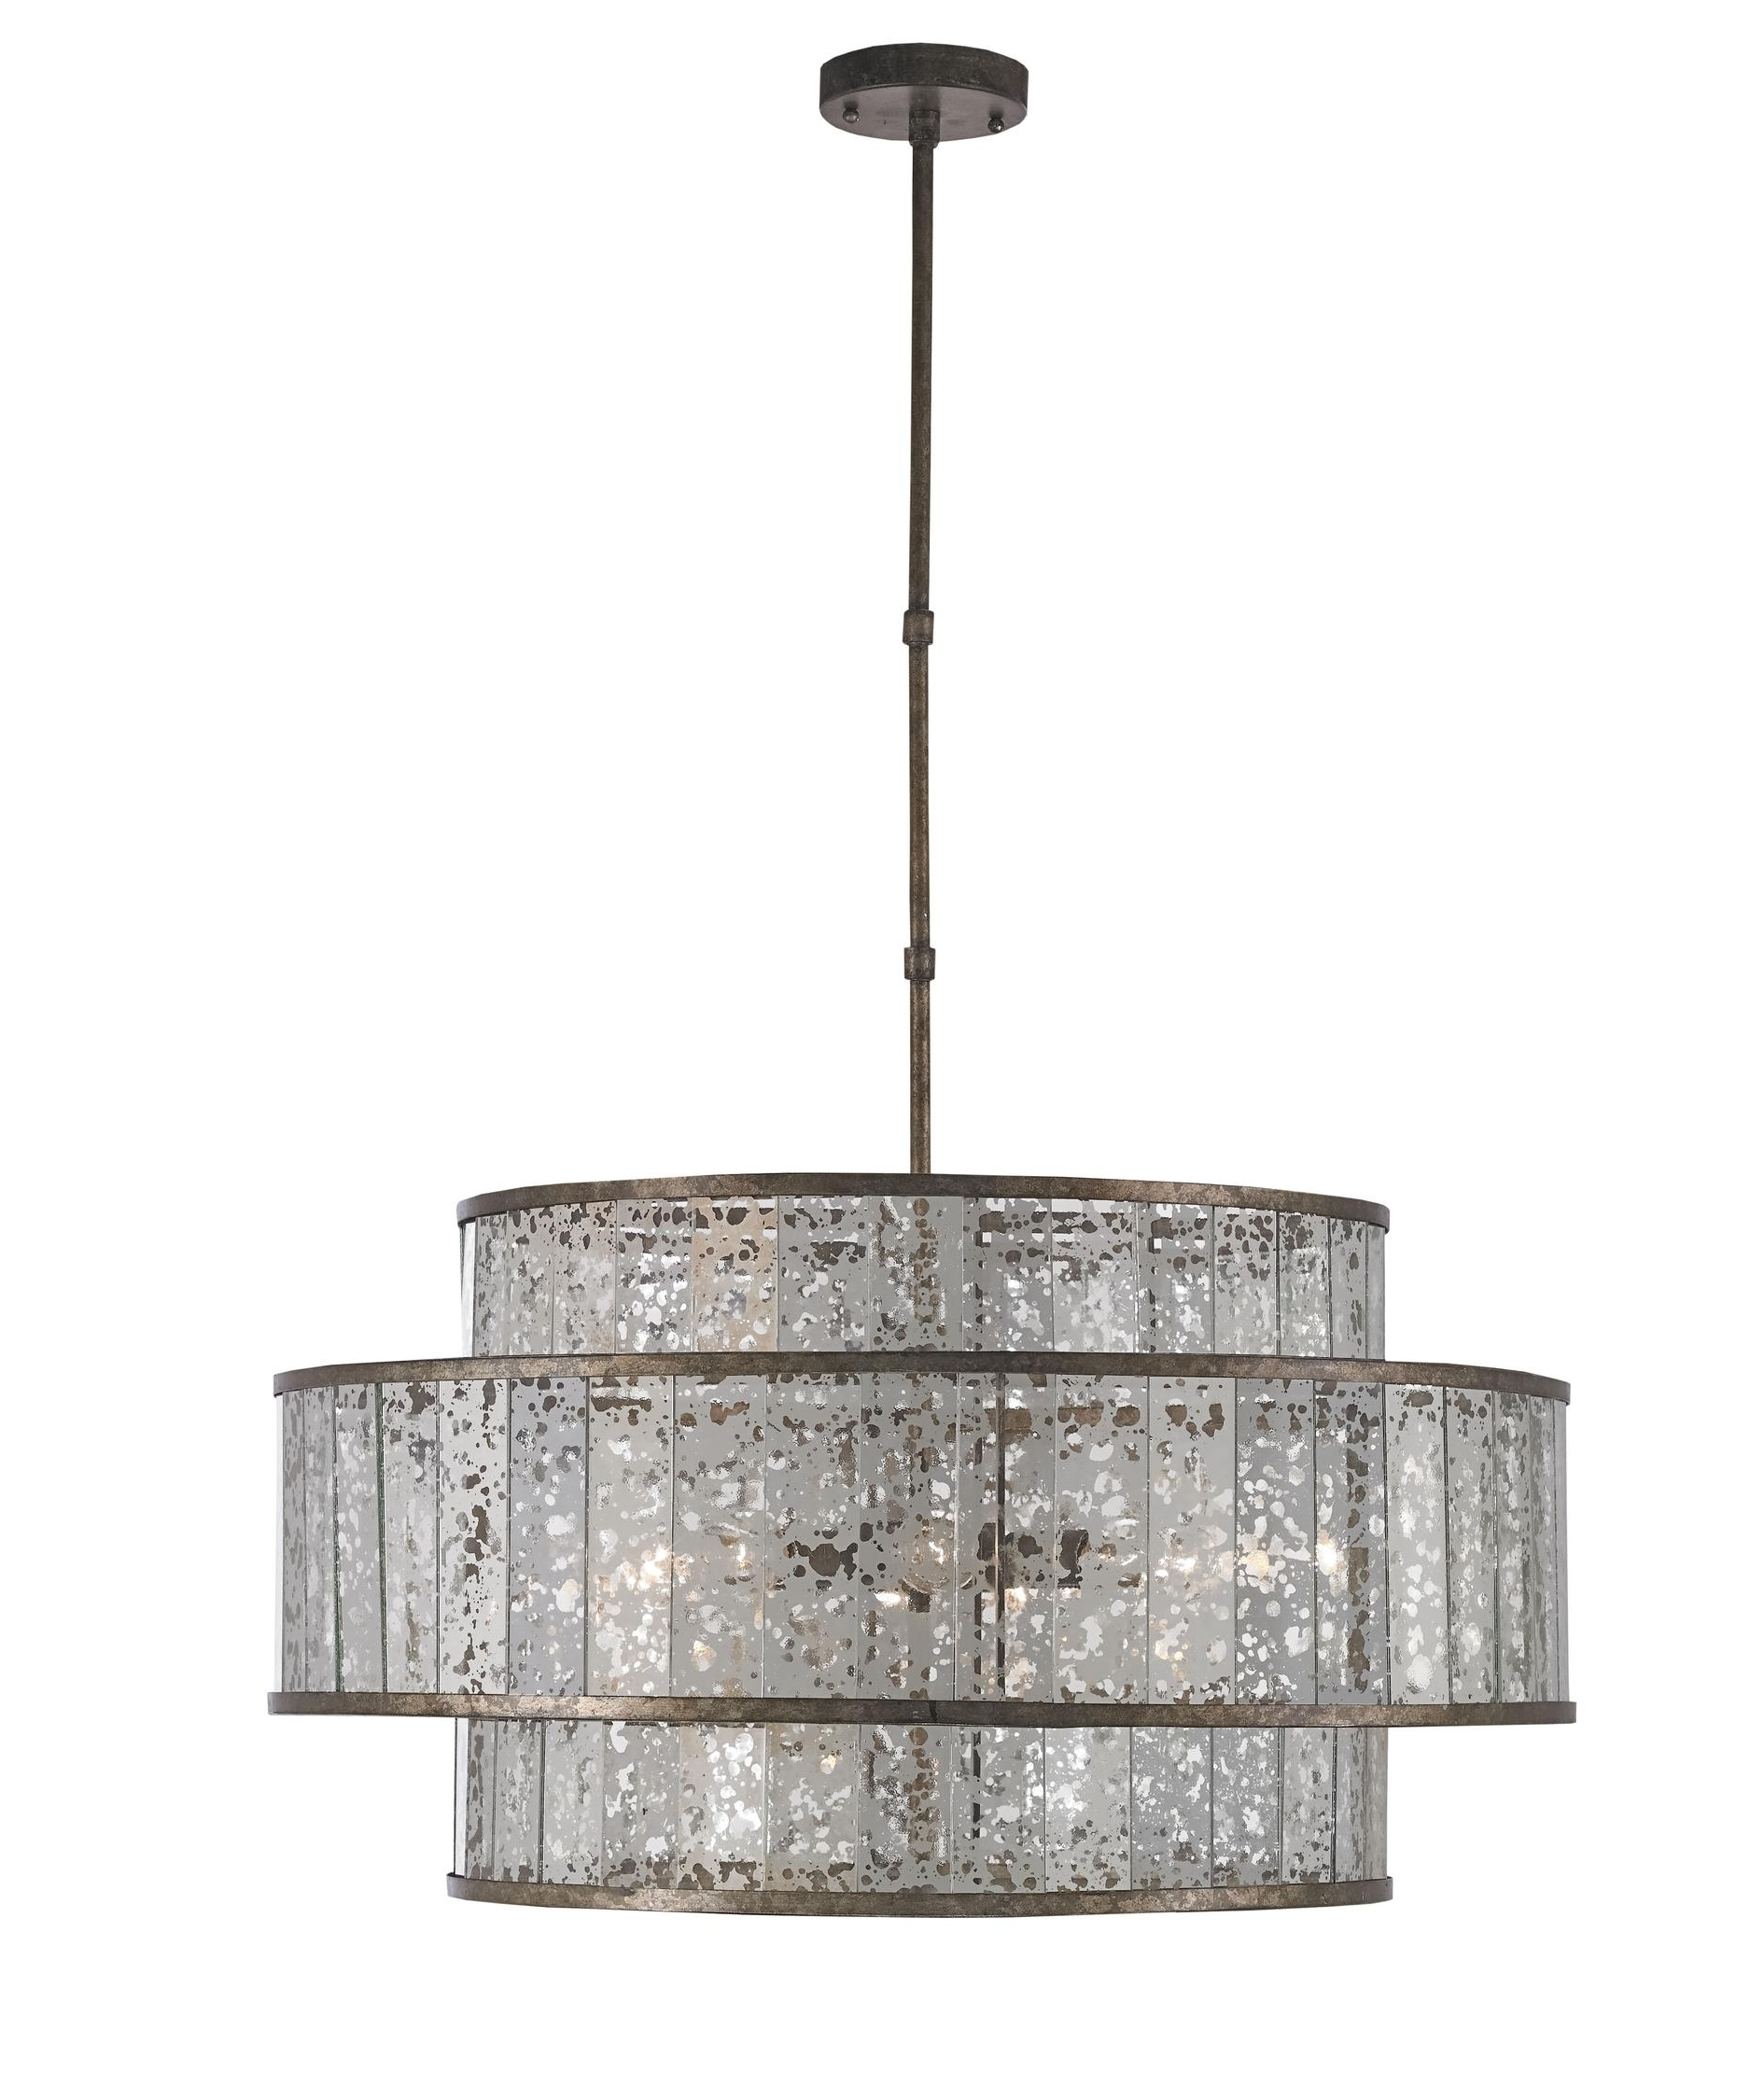 2019 Currey And Company 9454 Fantine 30 Inch Wide 8 Light Large Pendant Pertaining To Mirrored Chandelier (View 2 of 20)